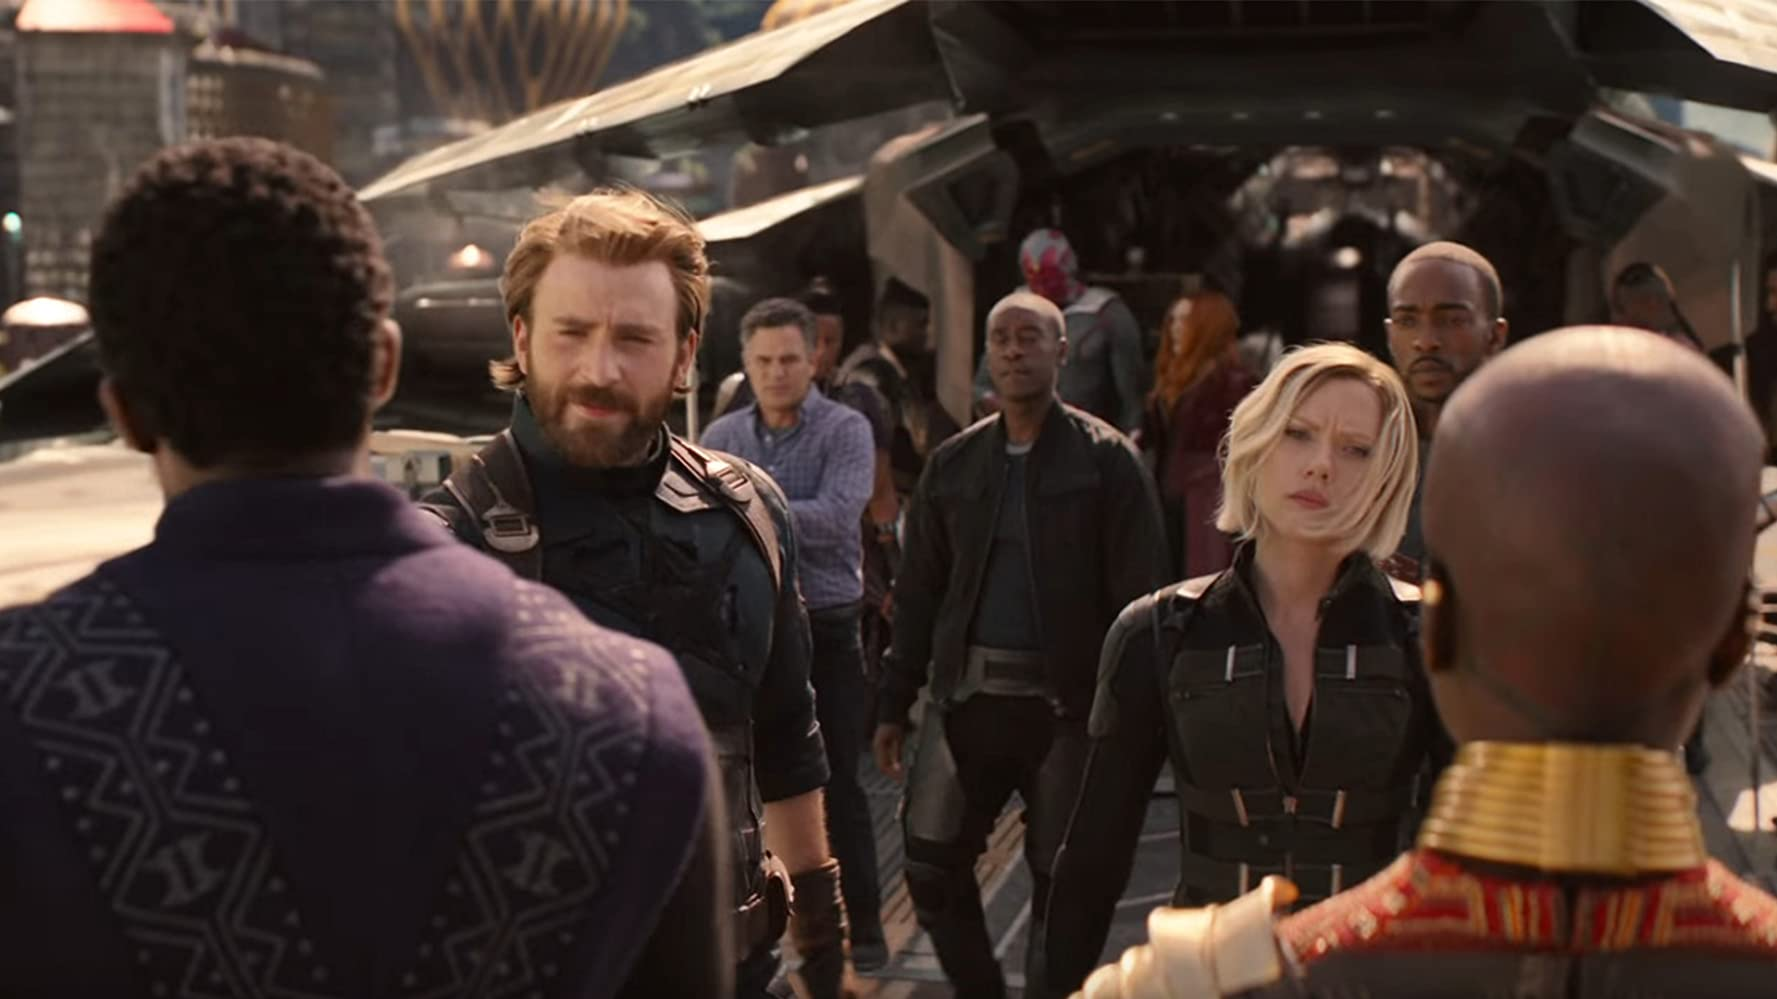 Don Cheadle, Paul Bettany, Chris Evans, Scarlett Johansson, Elizabeth Olsen, Mark Ruffalo, Anthony Mackie, Chadwick Boseman, and Danai Gurira in Avengers: Infinity War (2018)